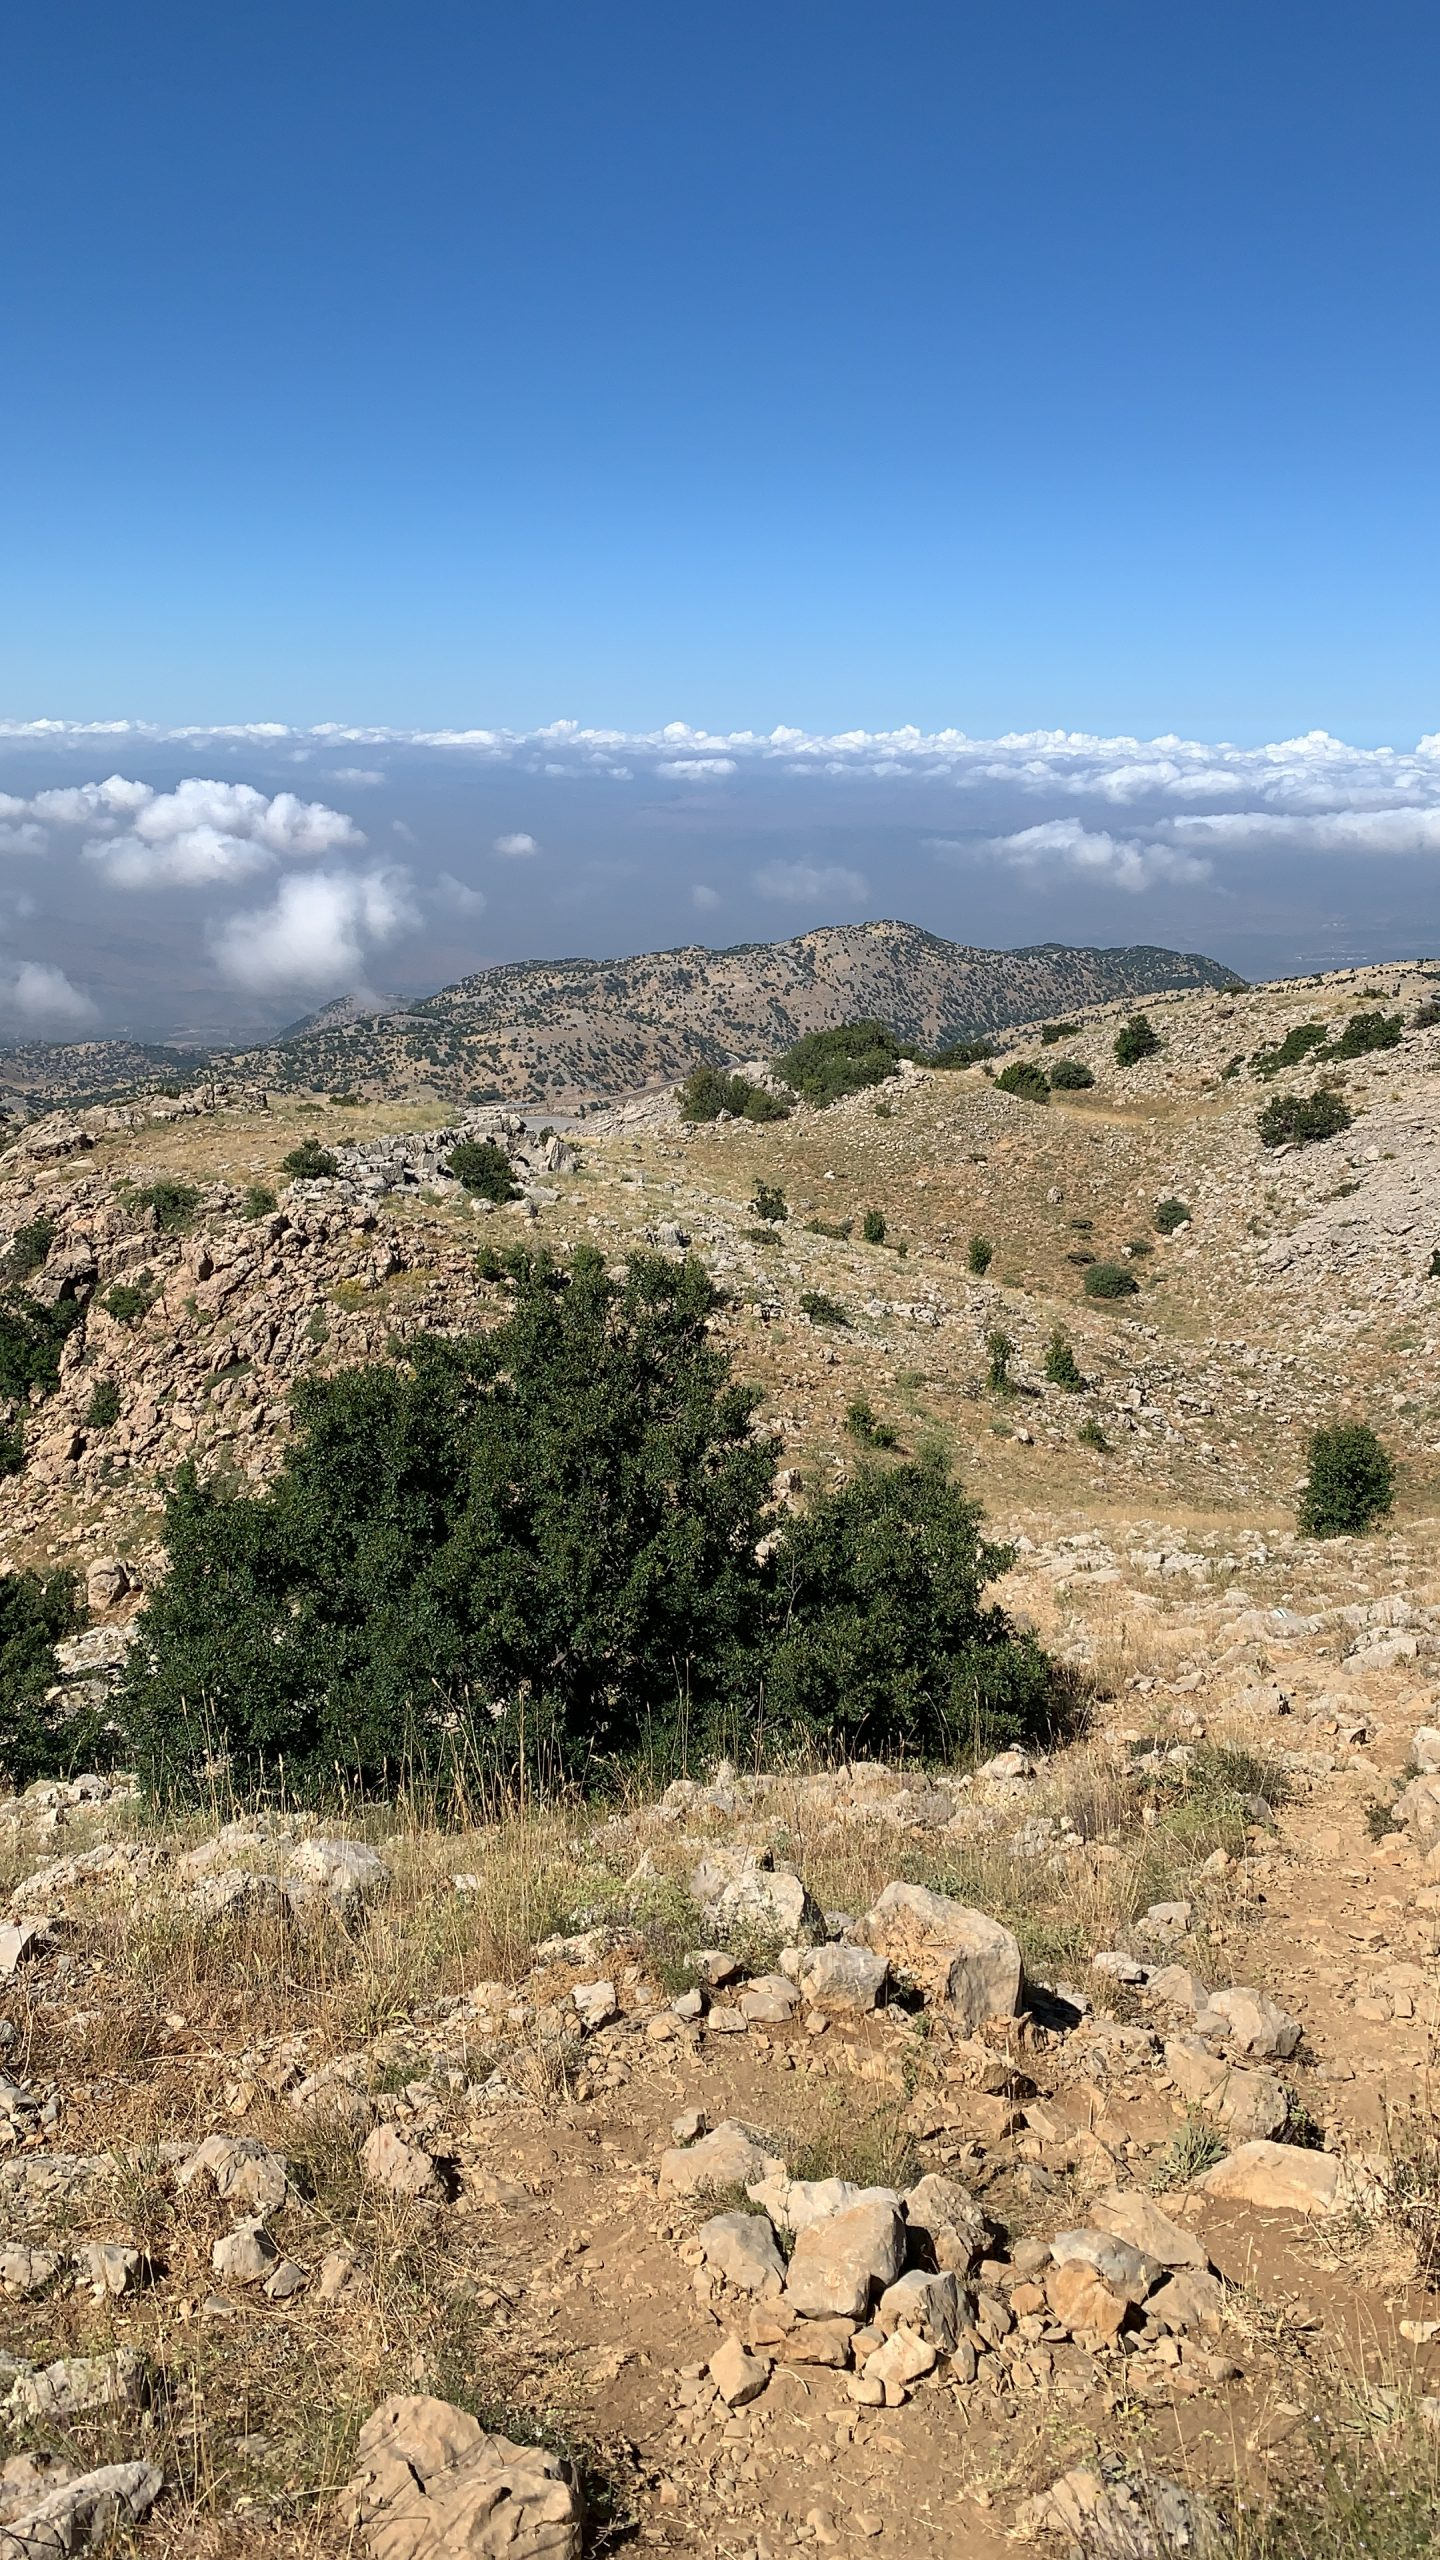 View from the peak of the Hermon Mountain